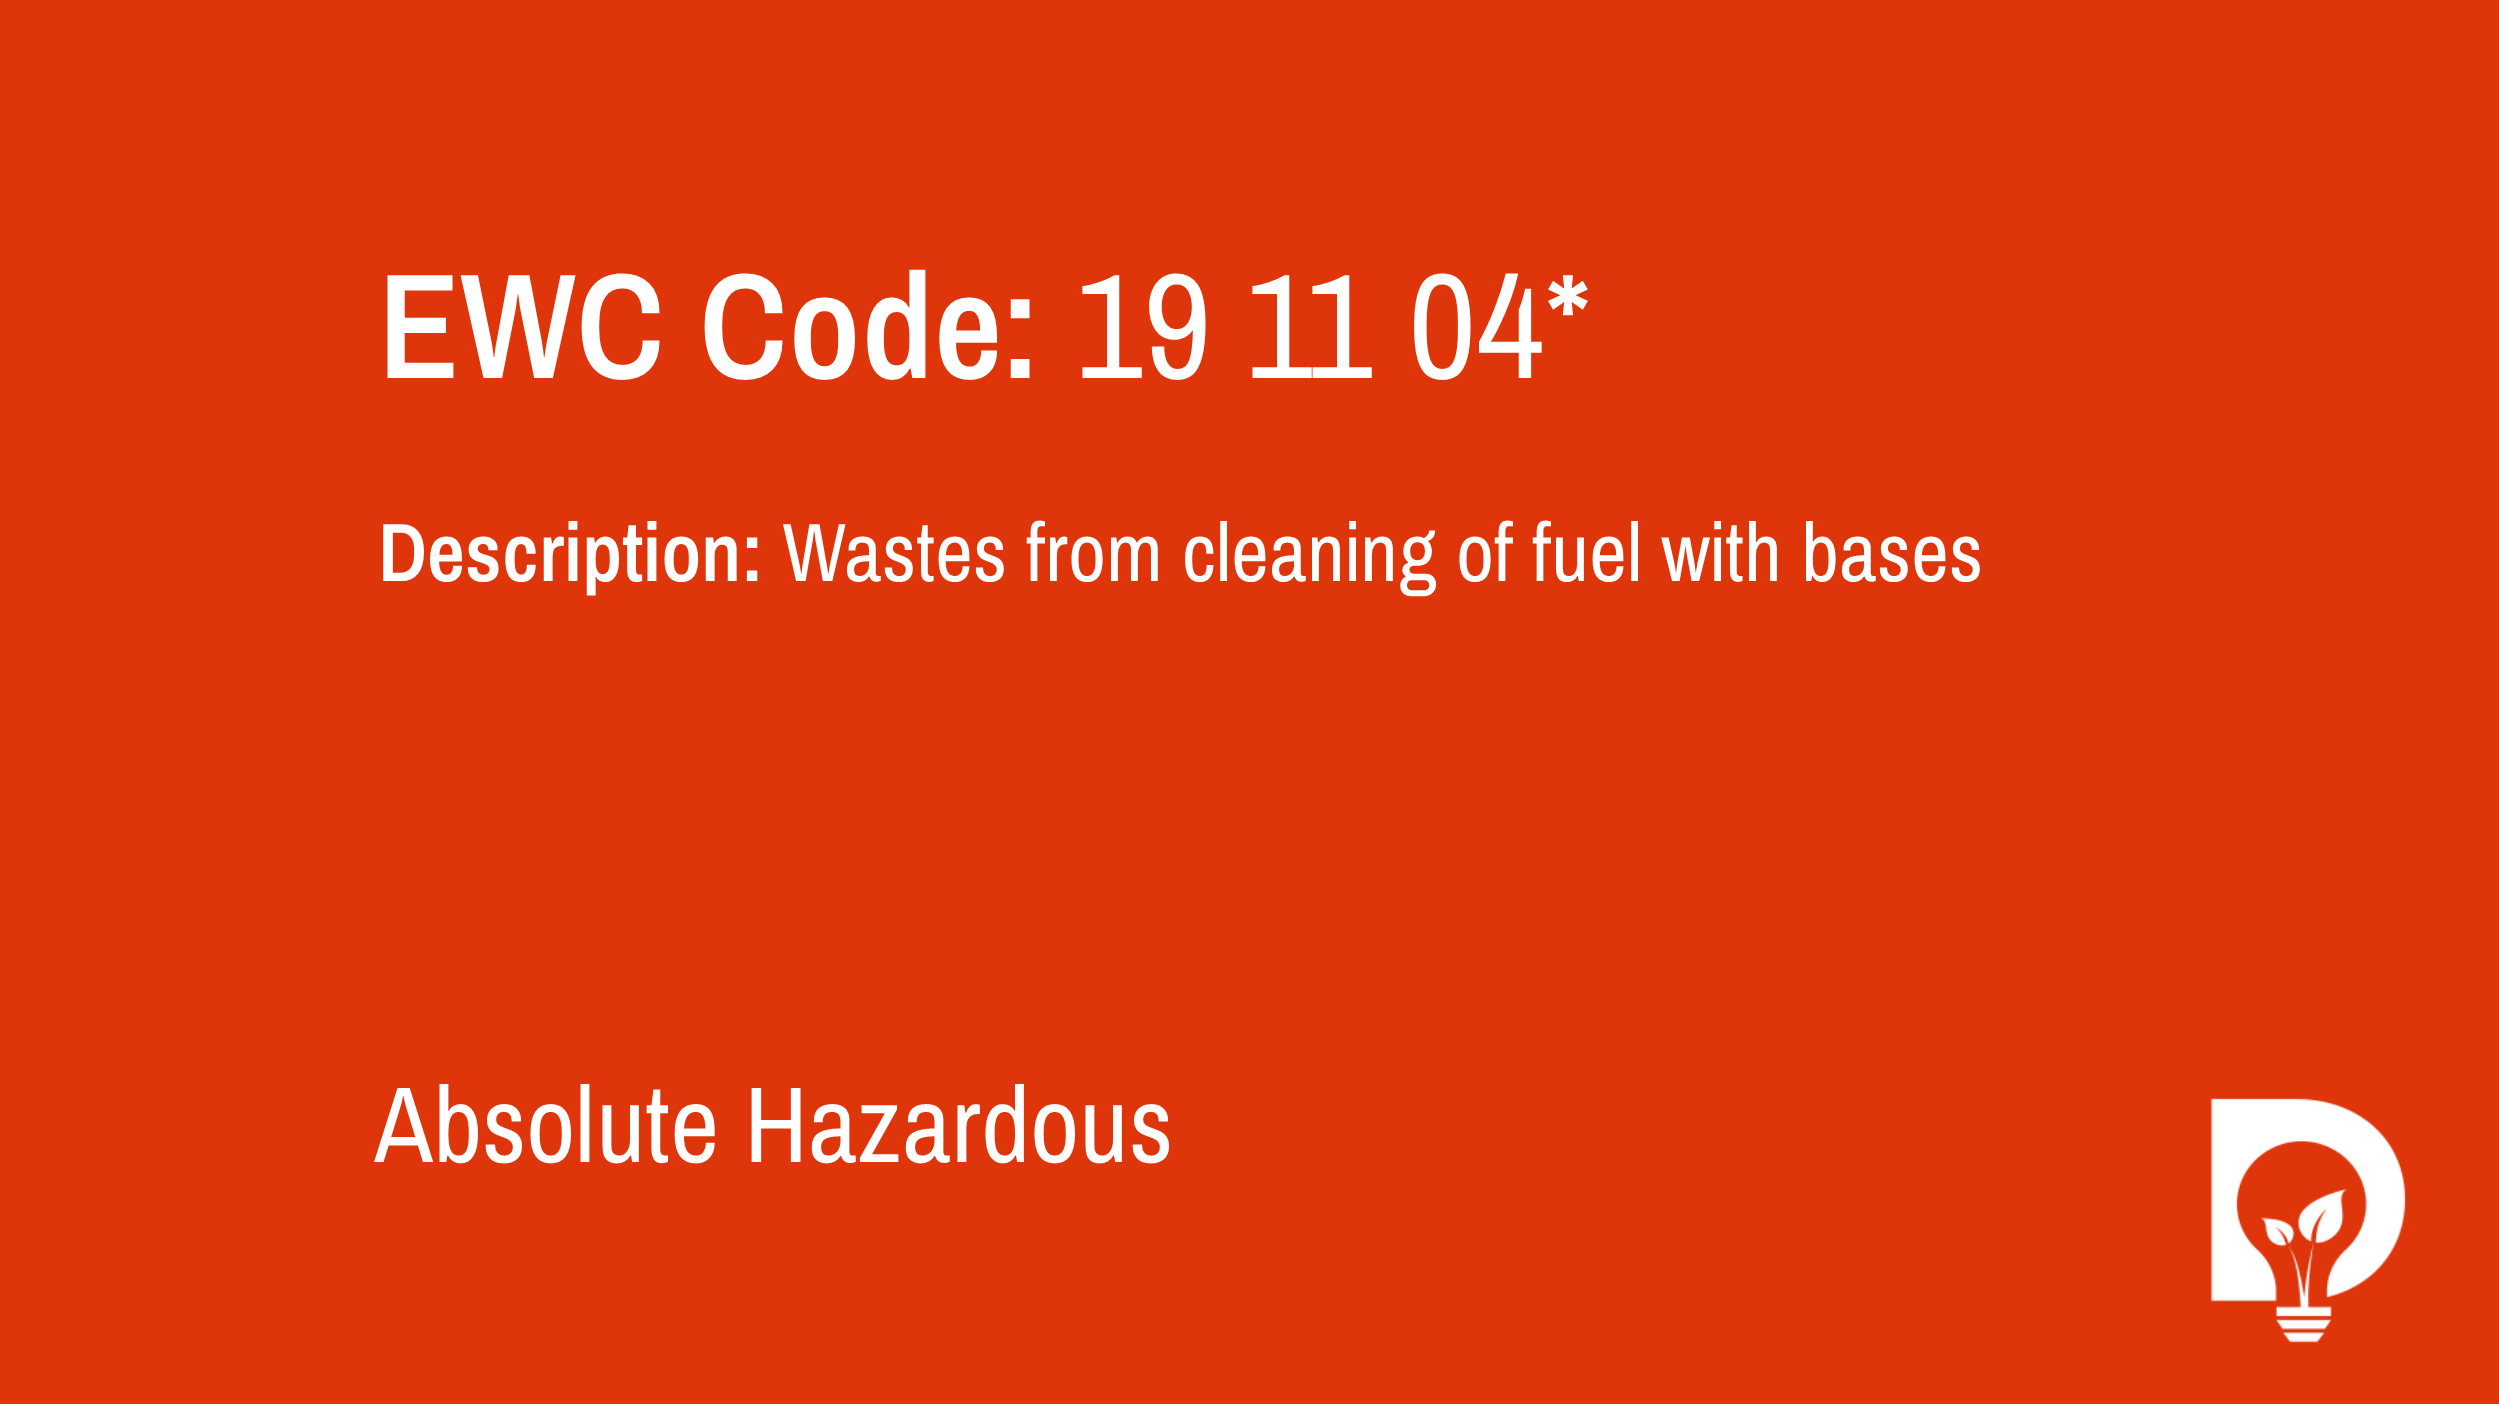 EWC Code: 19 11 04* - wastes from cleaning of fuel with bases. Type: Absolute Hazardous. Image by Dsposal